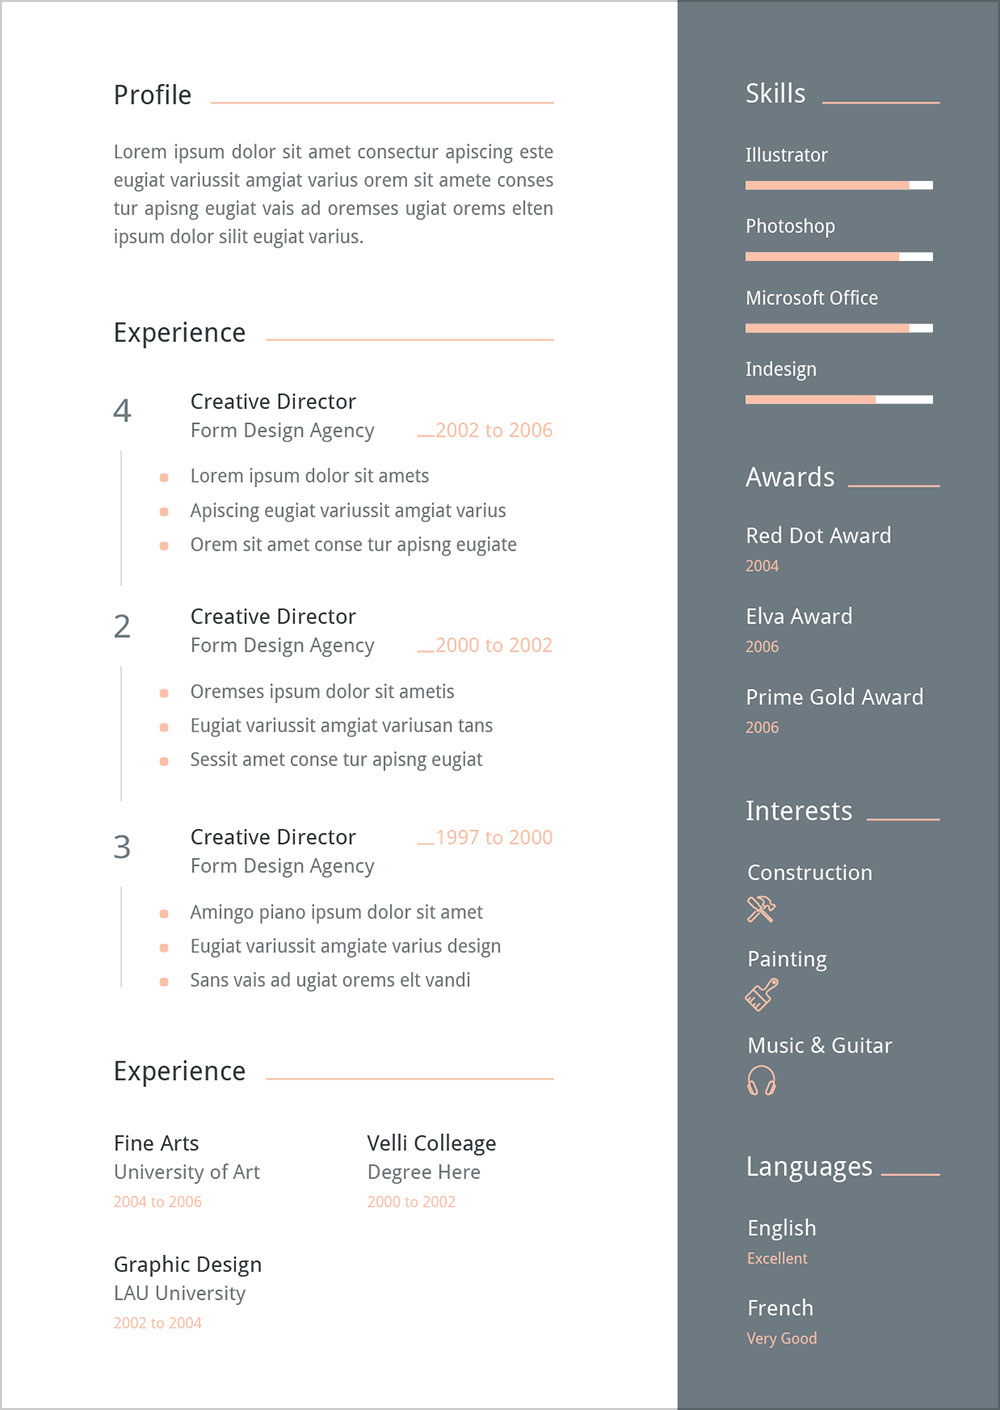 Free-Modern-Resume-Template--Cover-Letter-&-Portfolio-in-Ai-Format-004